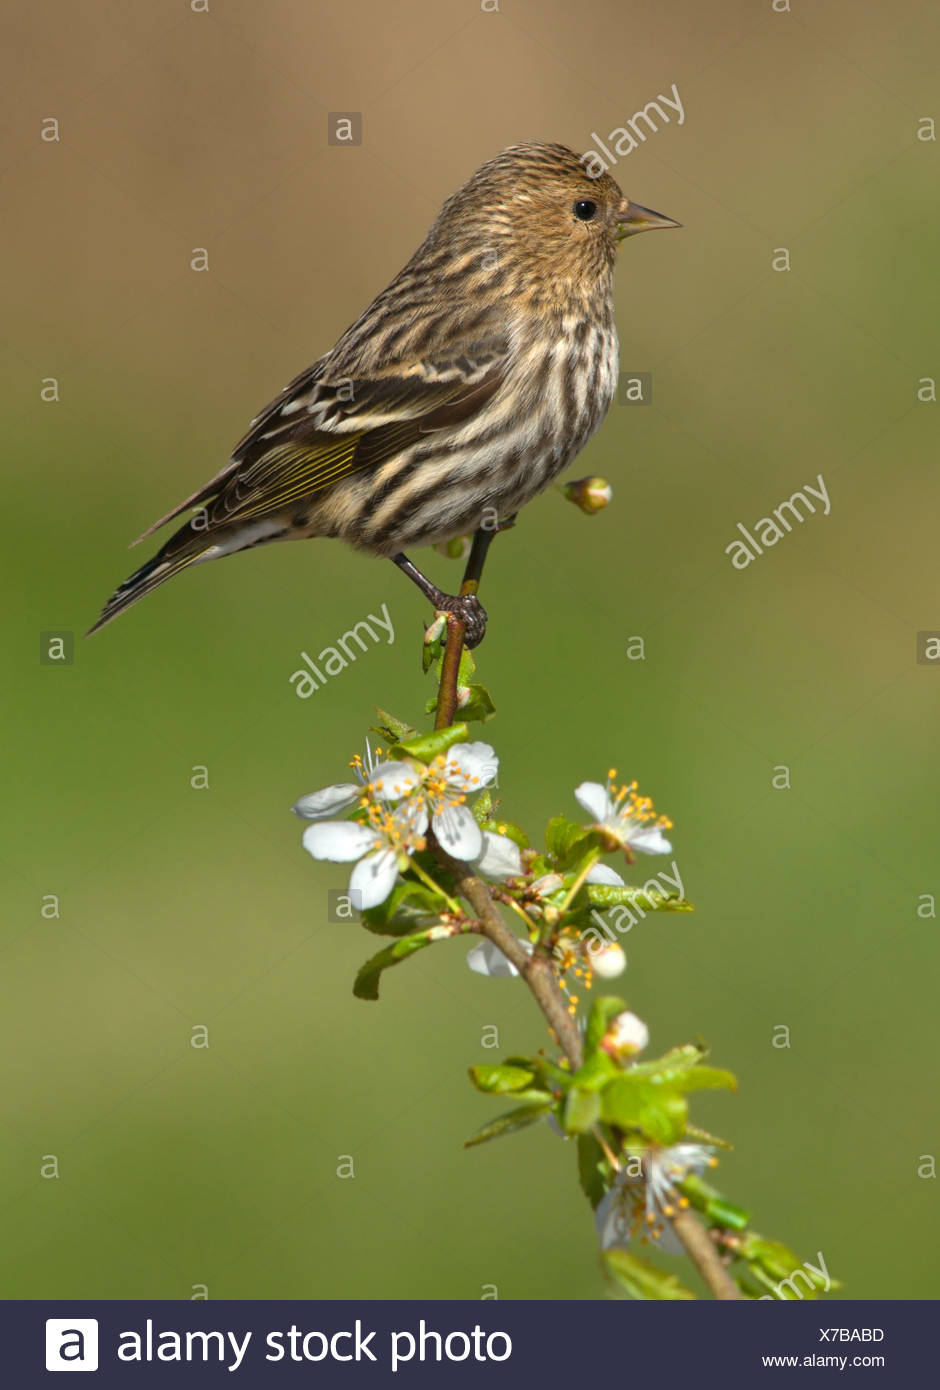 Pine siskin (Carduelis pinus) perched on flowering apple branch in Victoria, Vancouver Island, British Columbia, Canada - Stock Image